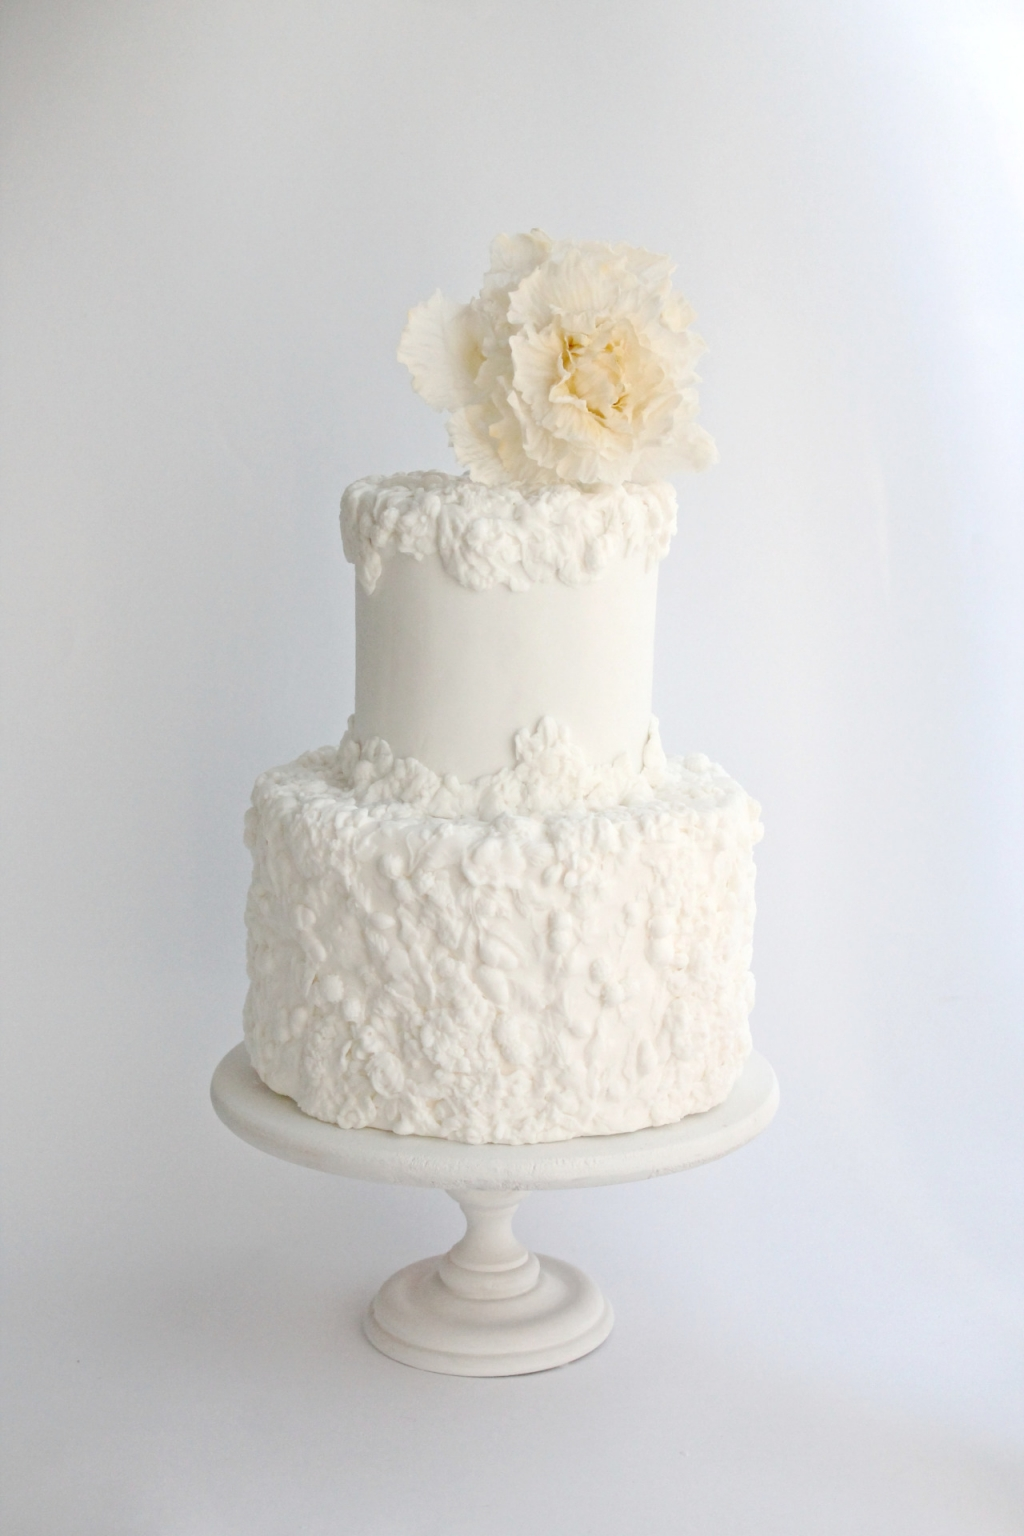 The Art of Sugar Flowers & Fine Wedding Cakes | Honolulu Wedding